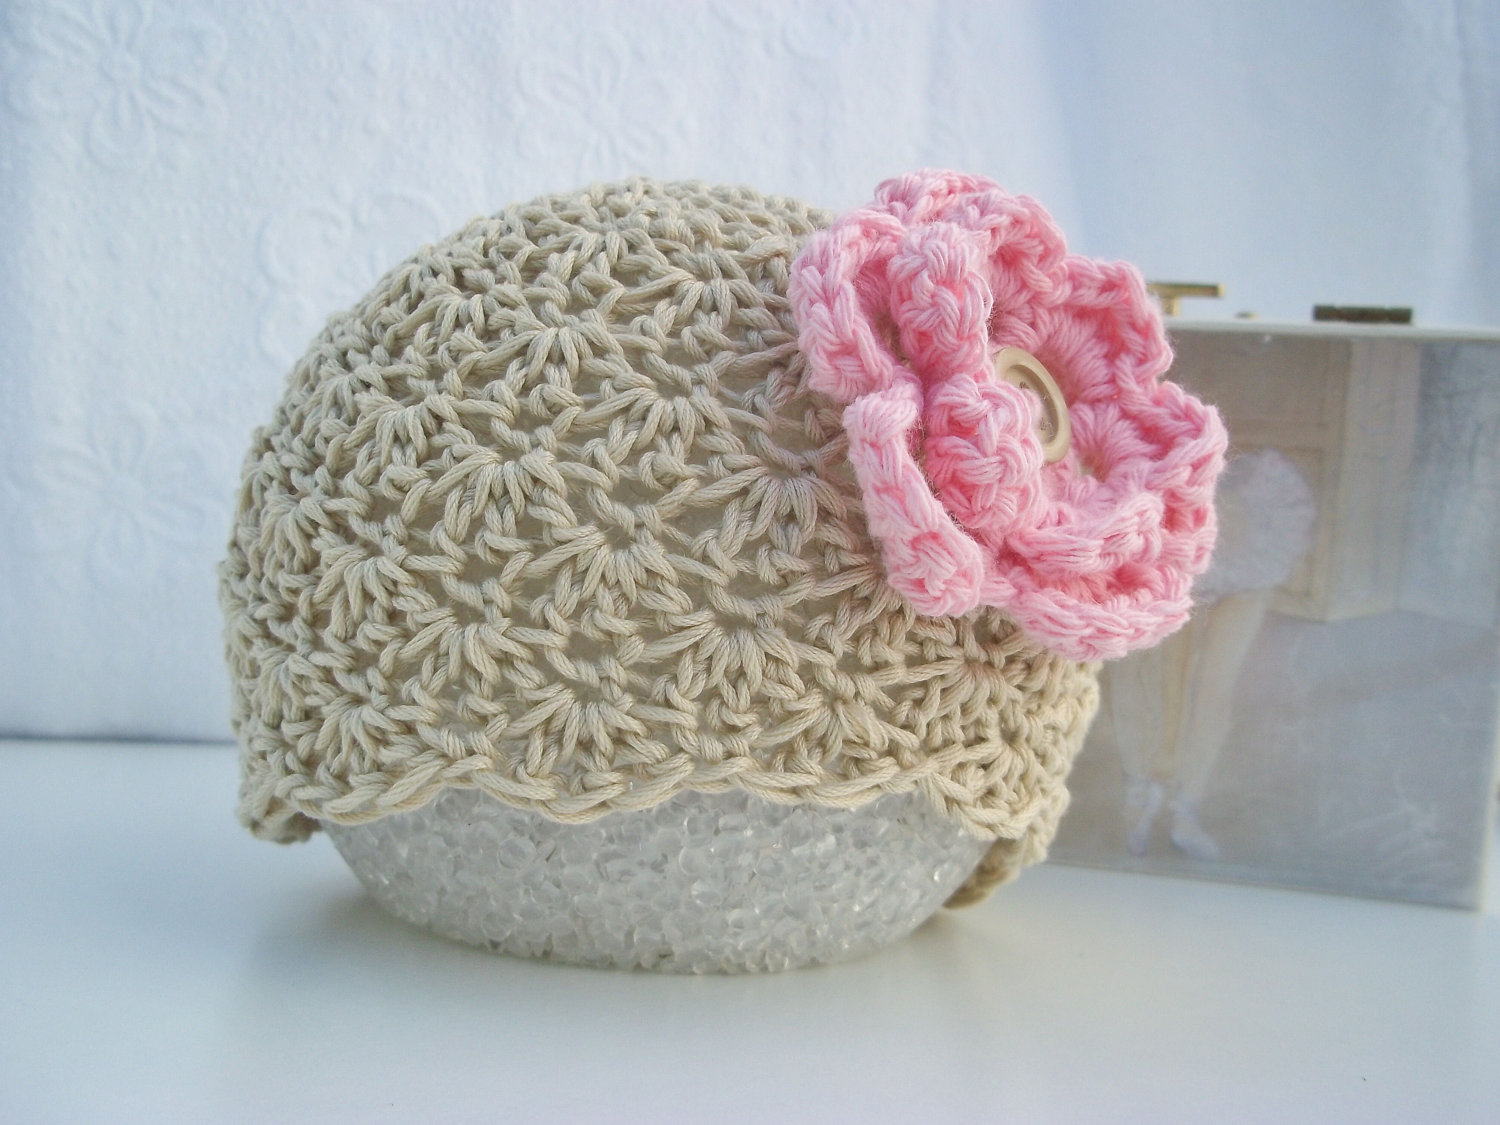 Crochet Patterns Infant Hats : Crochet baby hat - Baby girl hat - Newborn baby hat - Beige - Tan ...